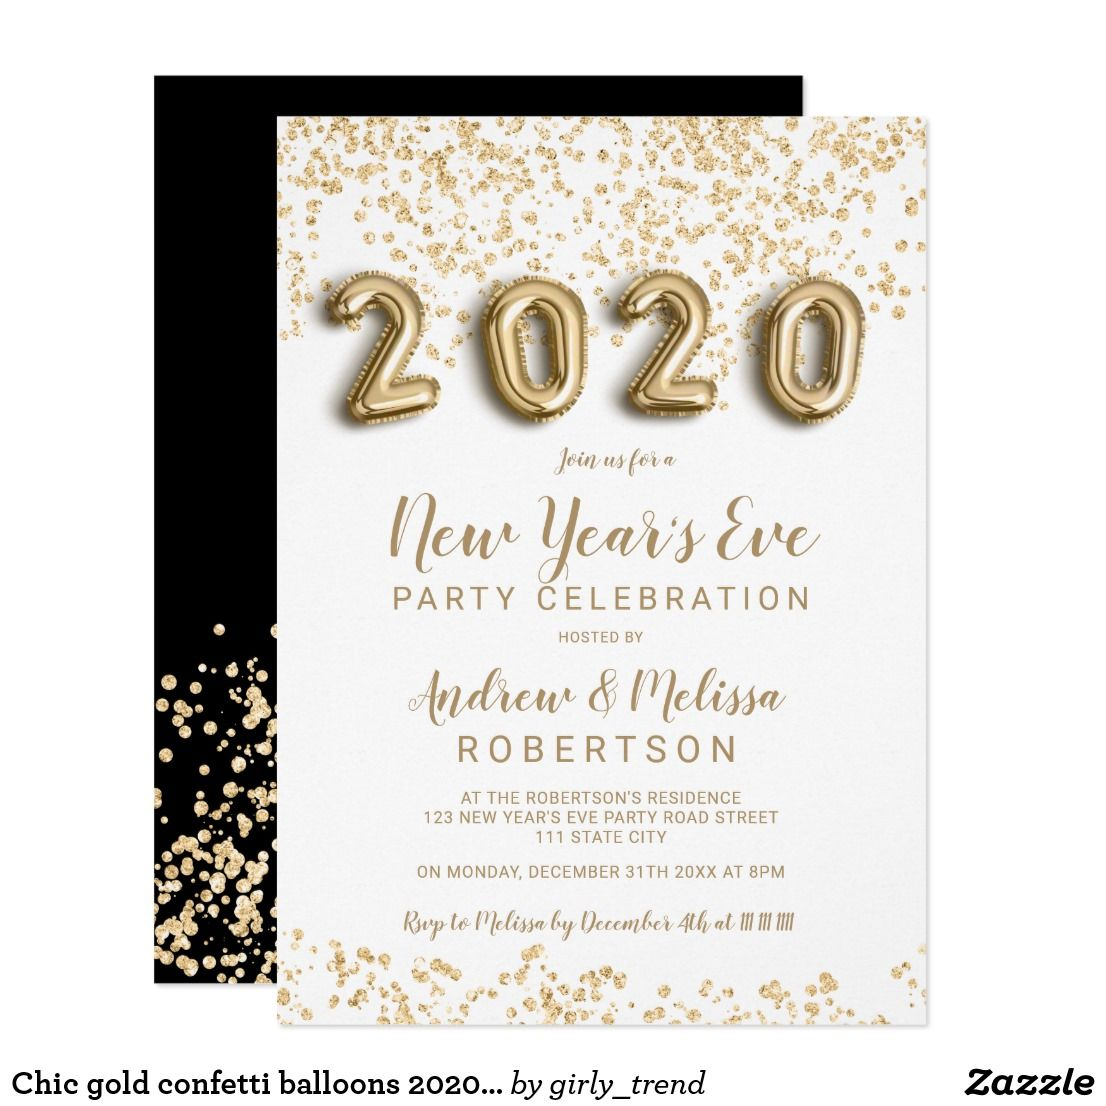 Chic gold confetti balloons 2020 New Year's eve Invitation